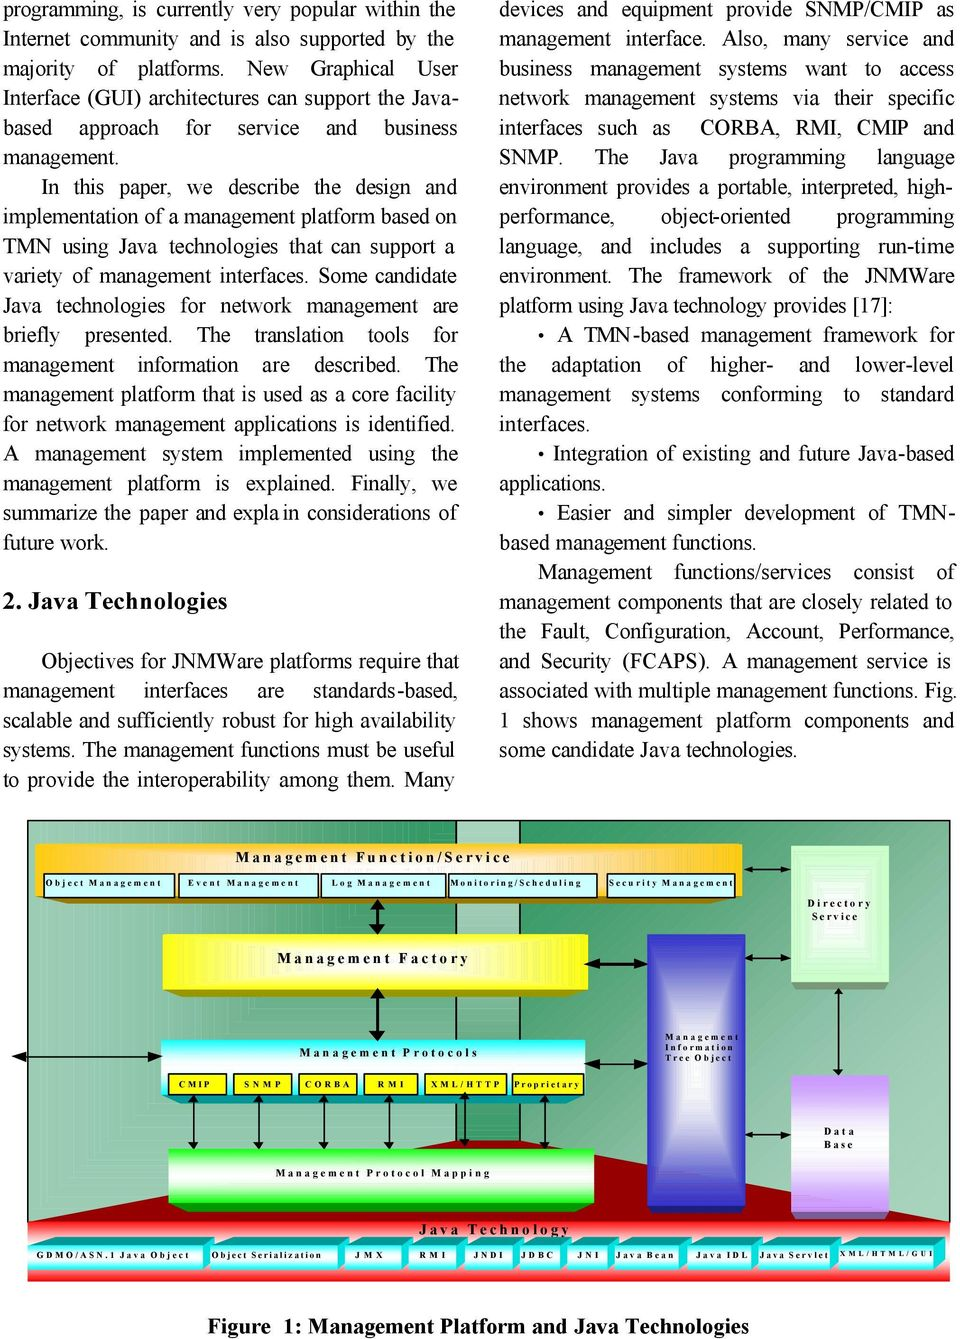 In this paper, we describe the design and implementation of a management platform based on TMN using Java technologies that can support a variety of management interfaces.